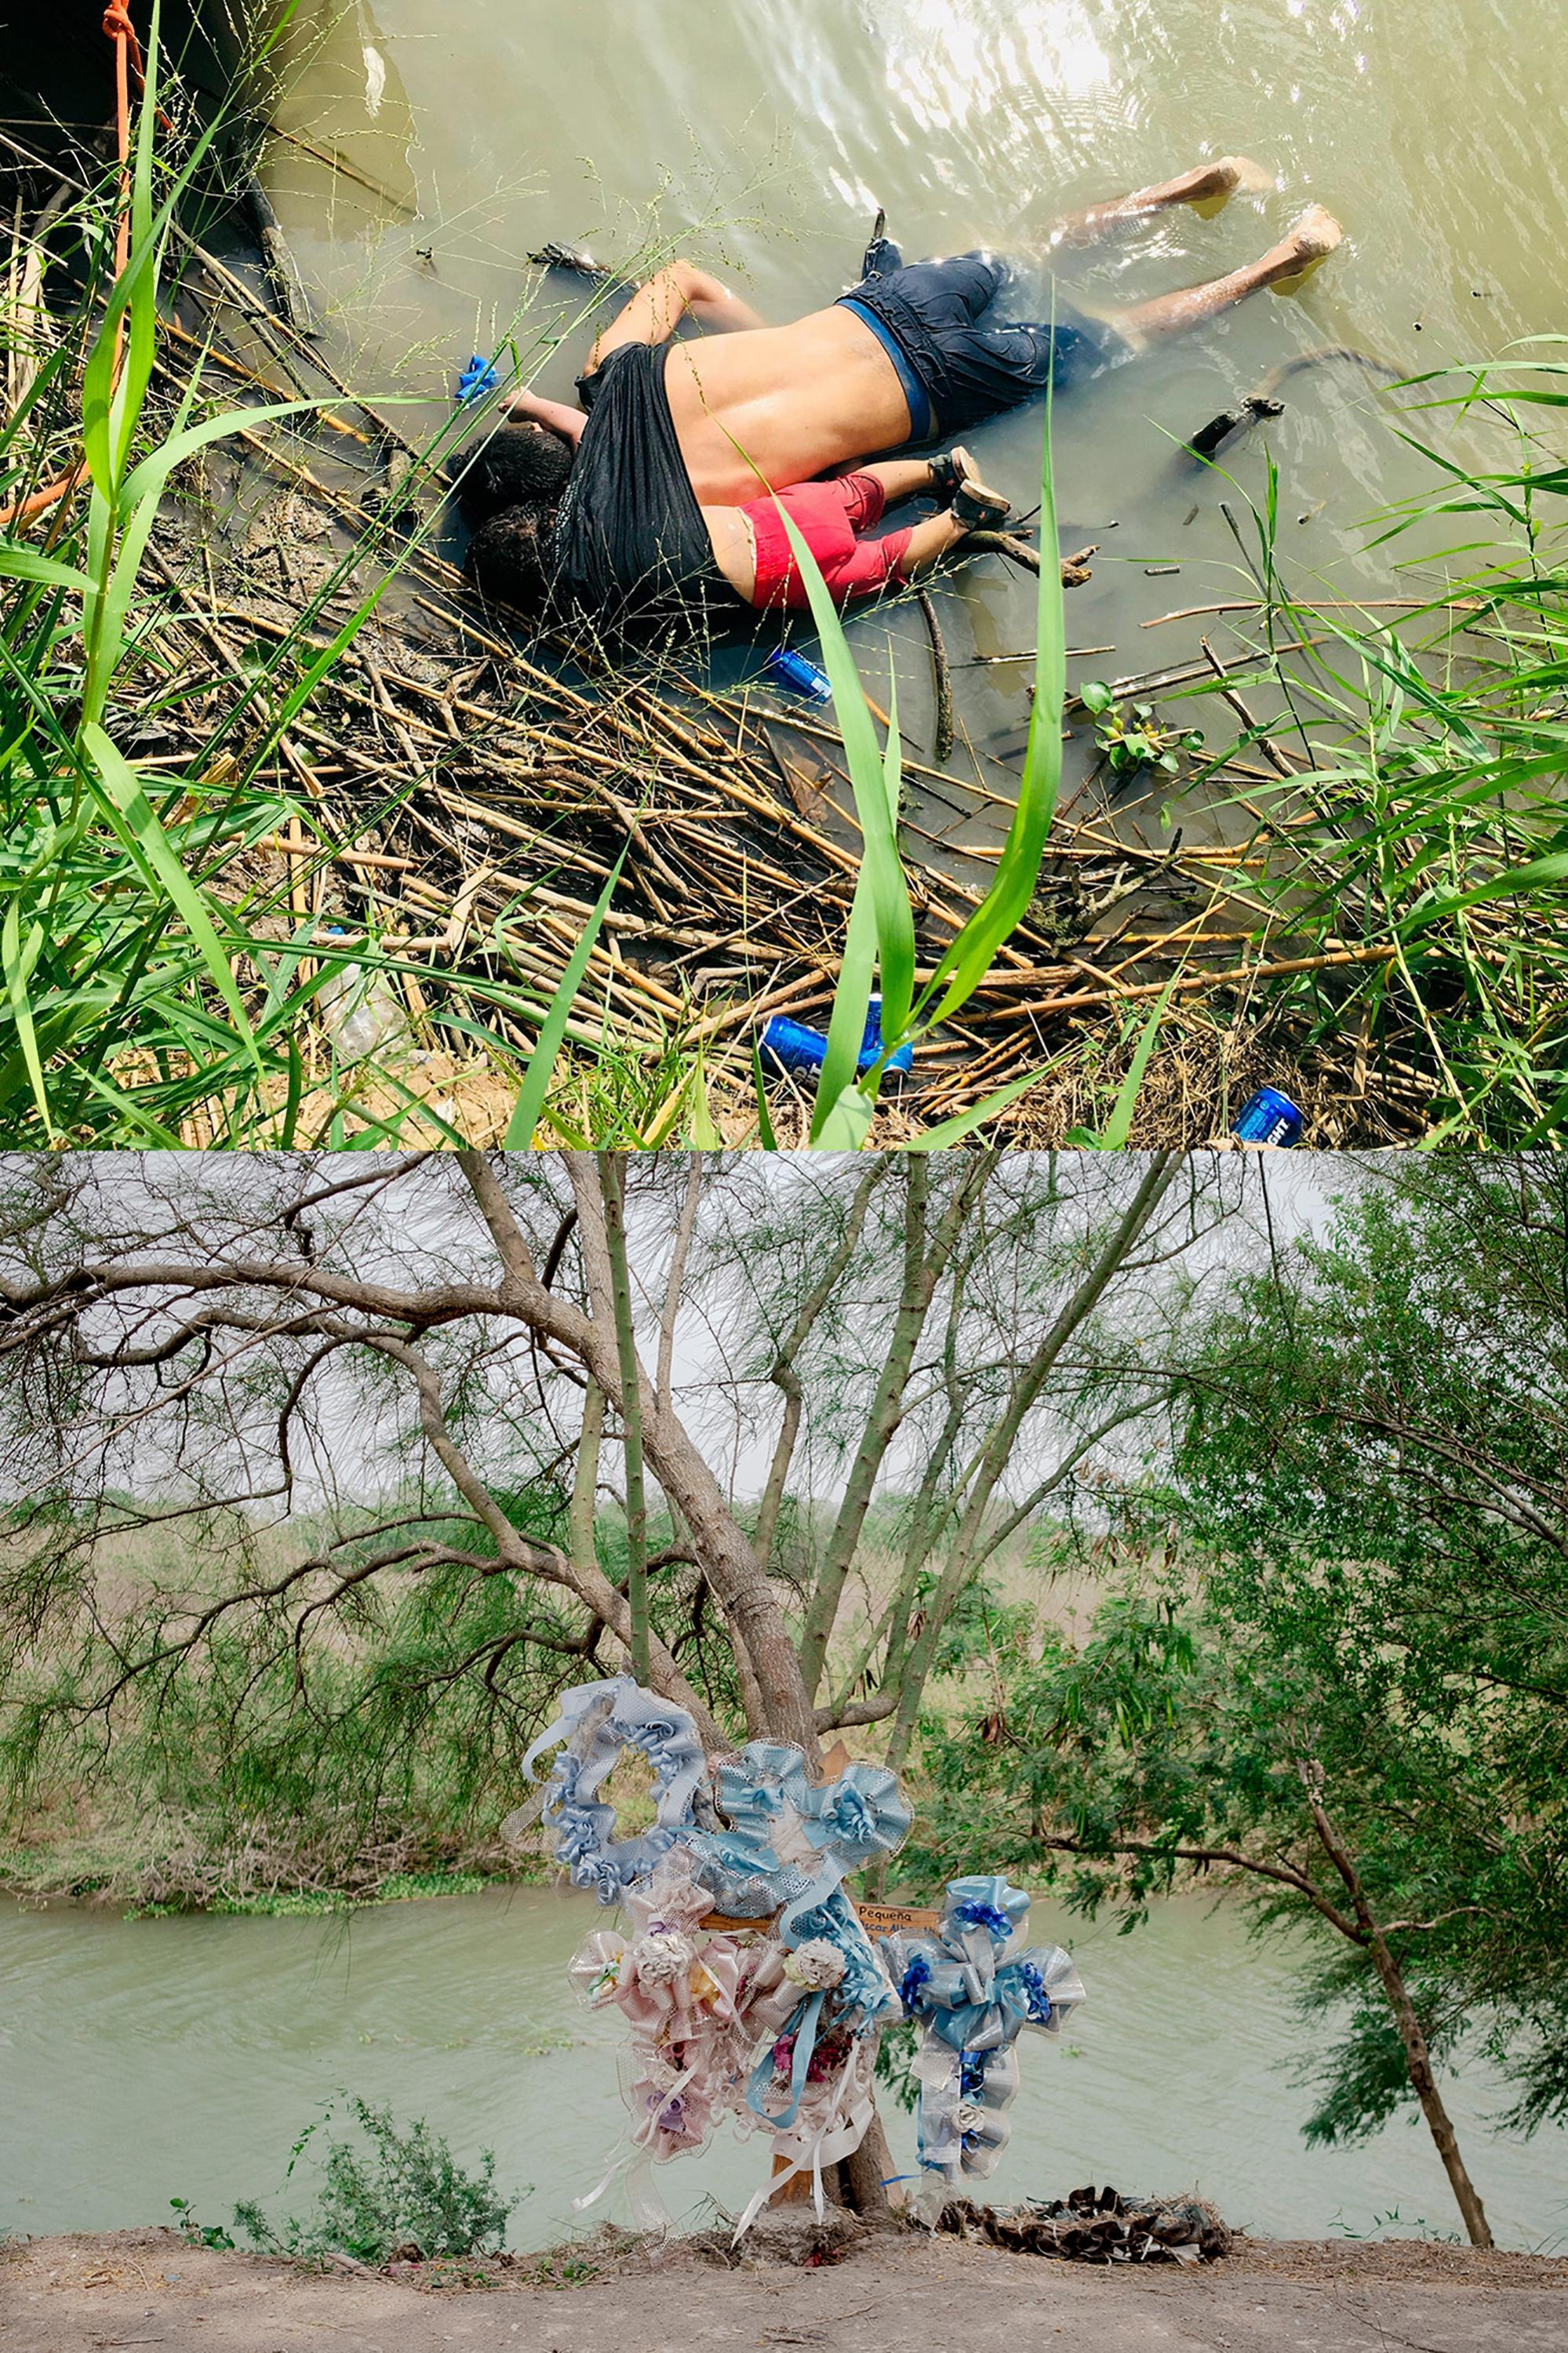 Above, the photograph taken on June 23, 2019 of the bodies of Oscar and Valeria in the Rio Bravo. Photo by AFP. Below, the place as it looks now where the bodies were found.